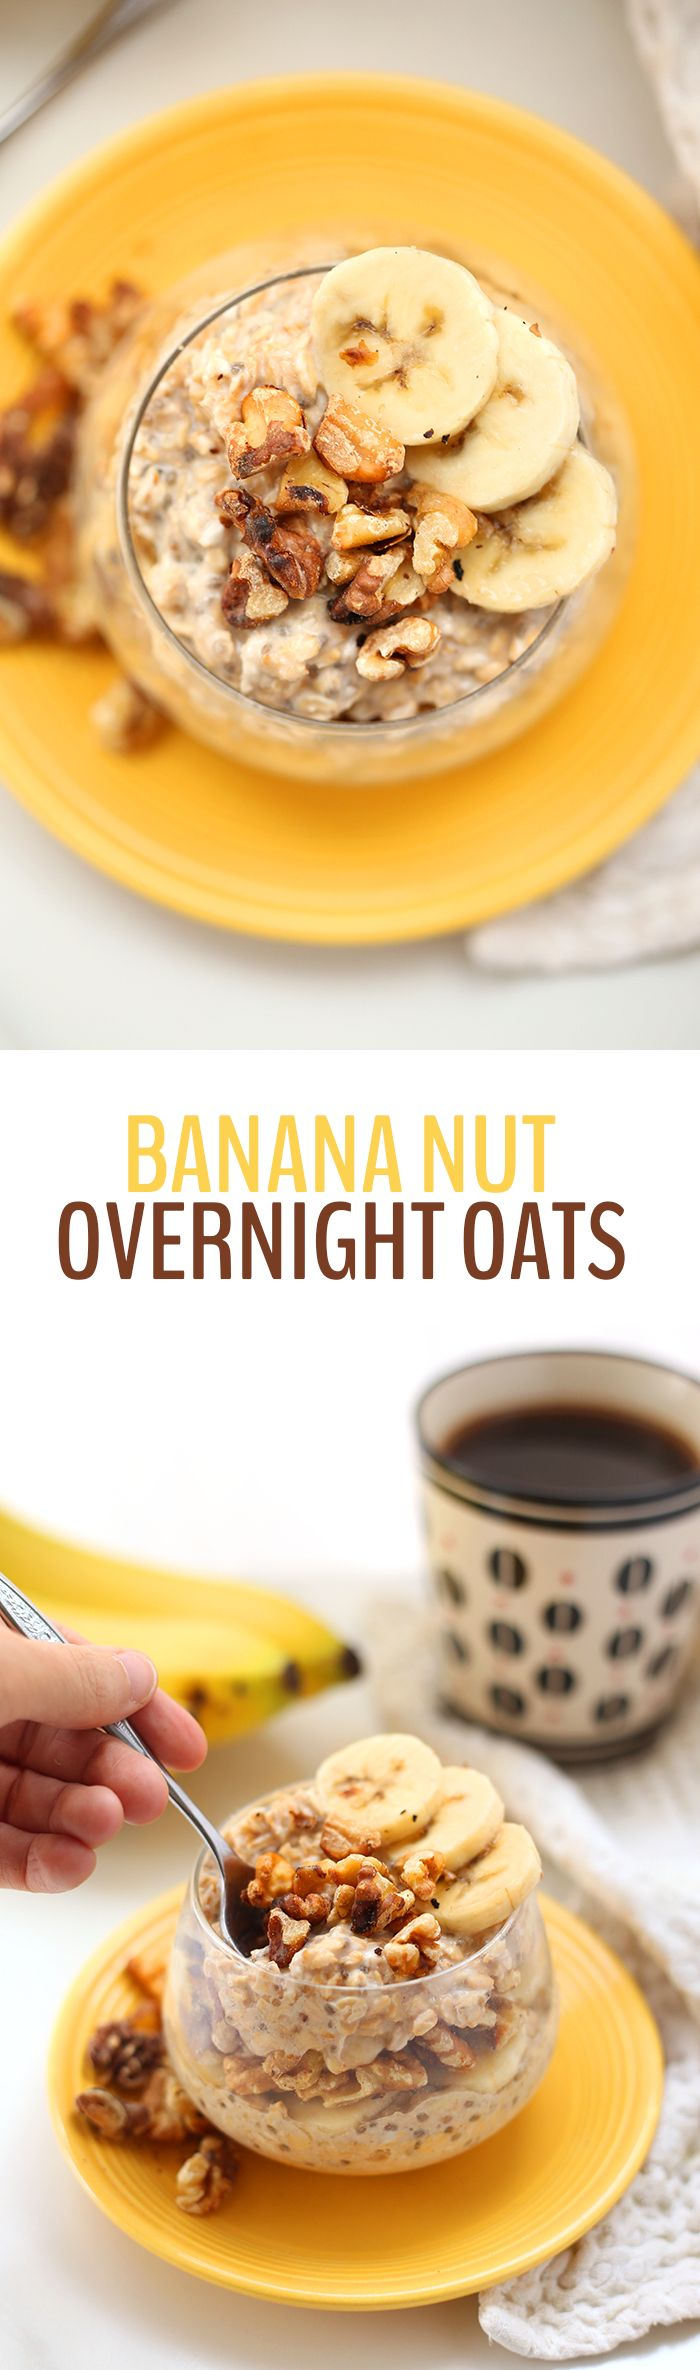 Banana Nut Overnight Oats - Pop them in the fridge overnight for an easy, healthy and nutritious breakfast waiting for you in the morning.